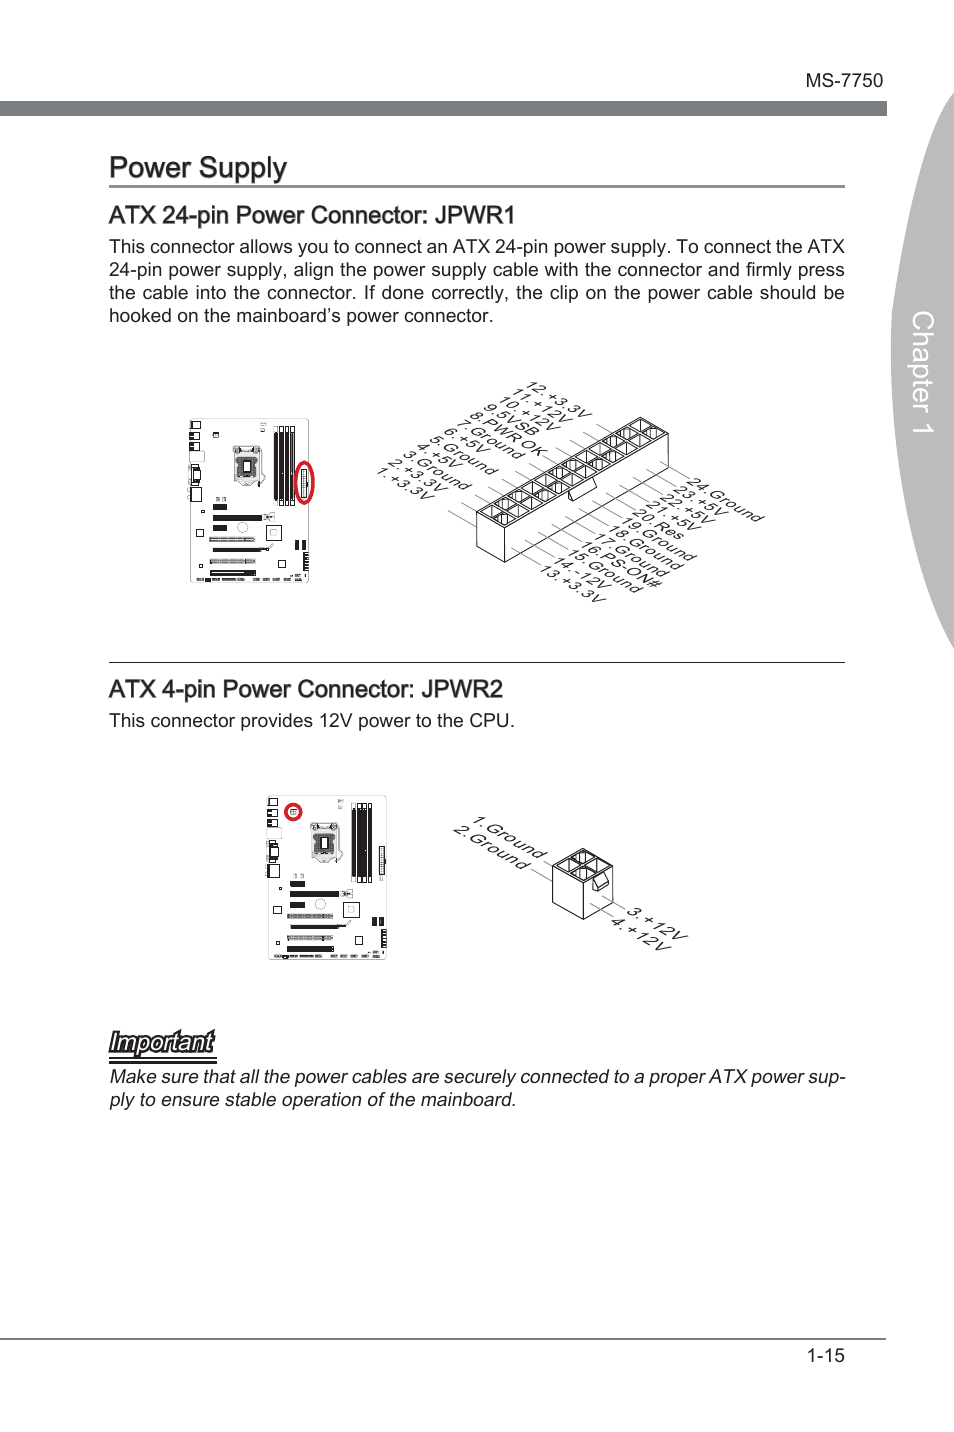 medium resolution of power supply atx 24 pin power connector jpwr1 atx 4 pin power connector jpwr2 msi z68a g43 g3 user manual page 25 80